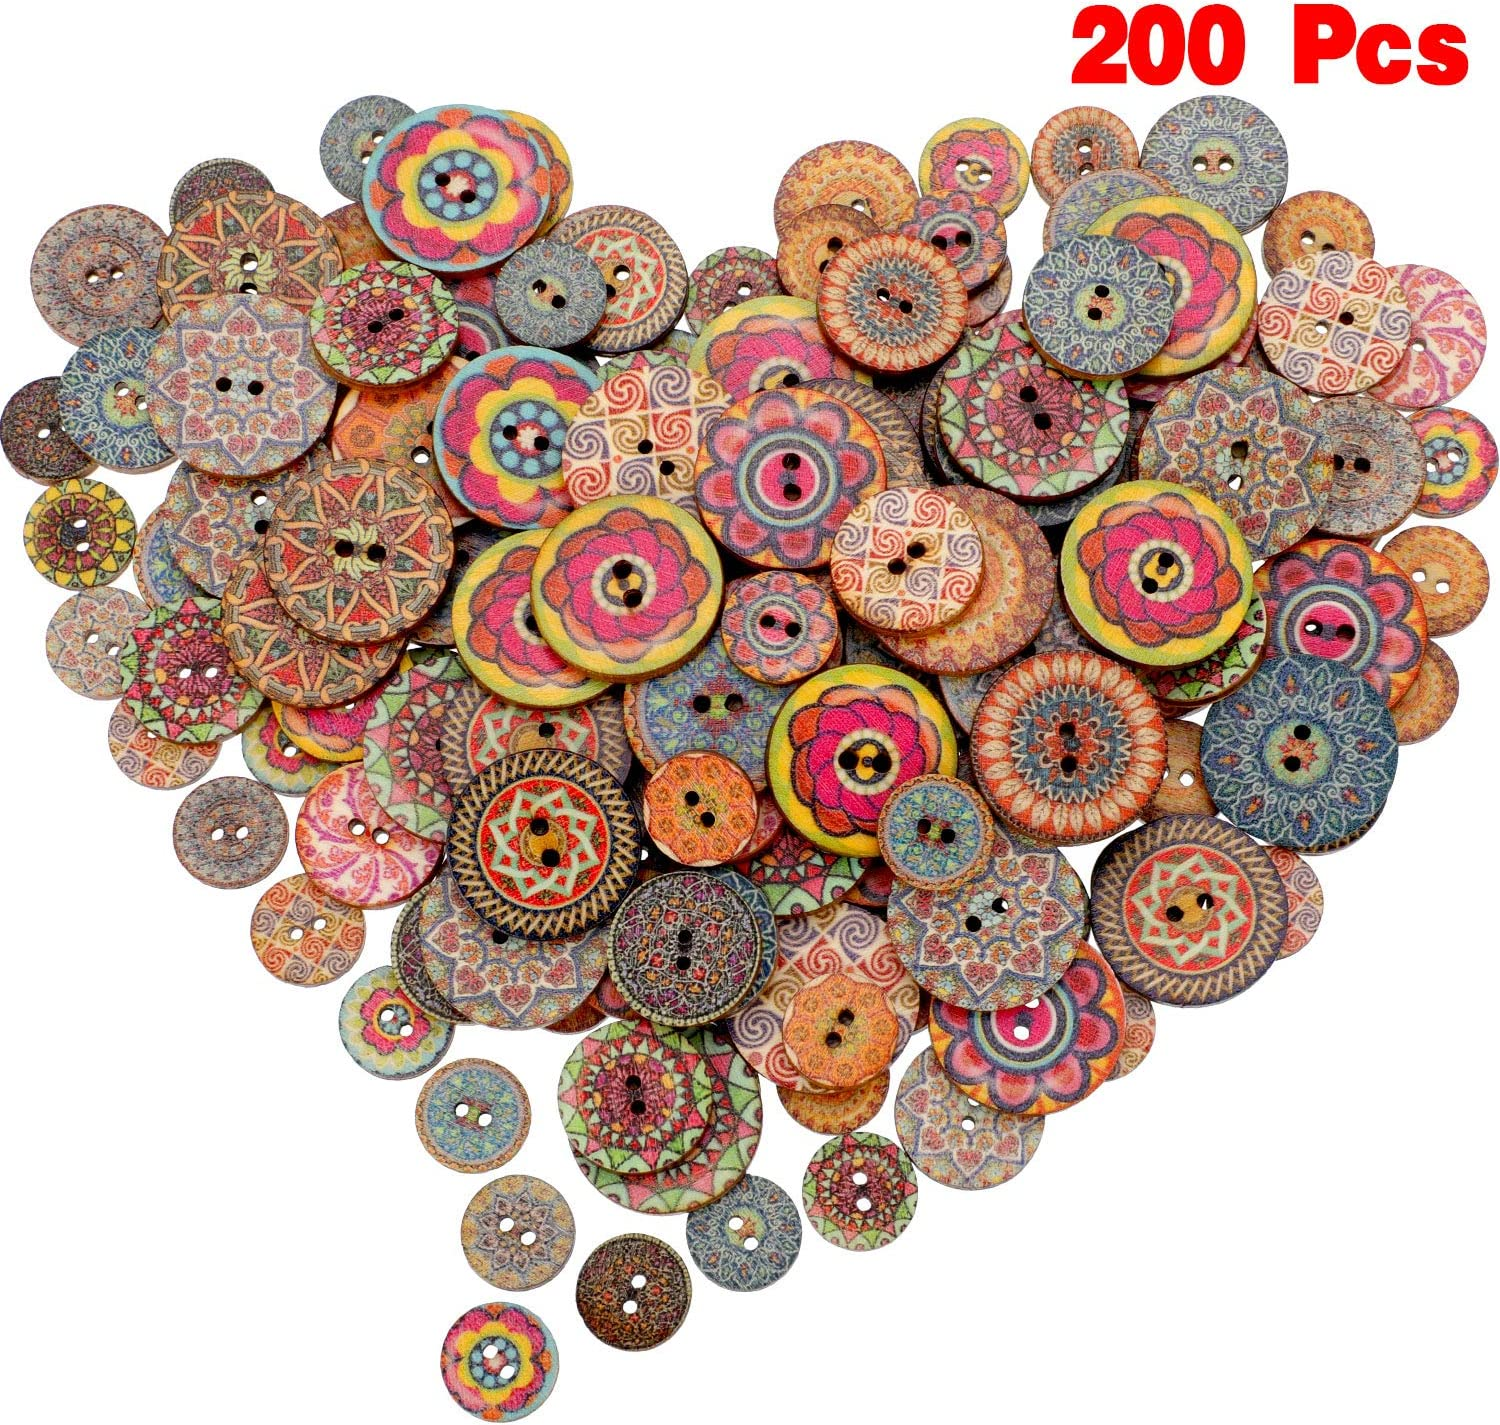 100 Pieces Wooden Decorative Buttons Mixed Round Flower Button with 100 Holes  for Sewing Crafting (Style 10, 105 mm/ 1000 mm/ 1005 mm)